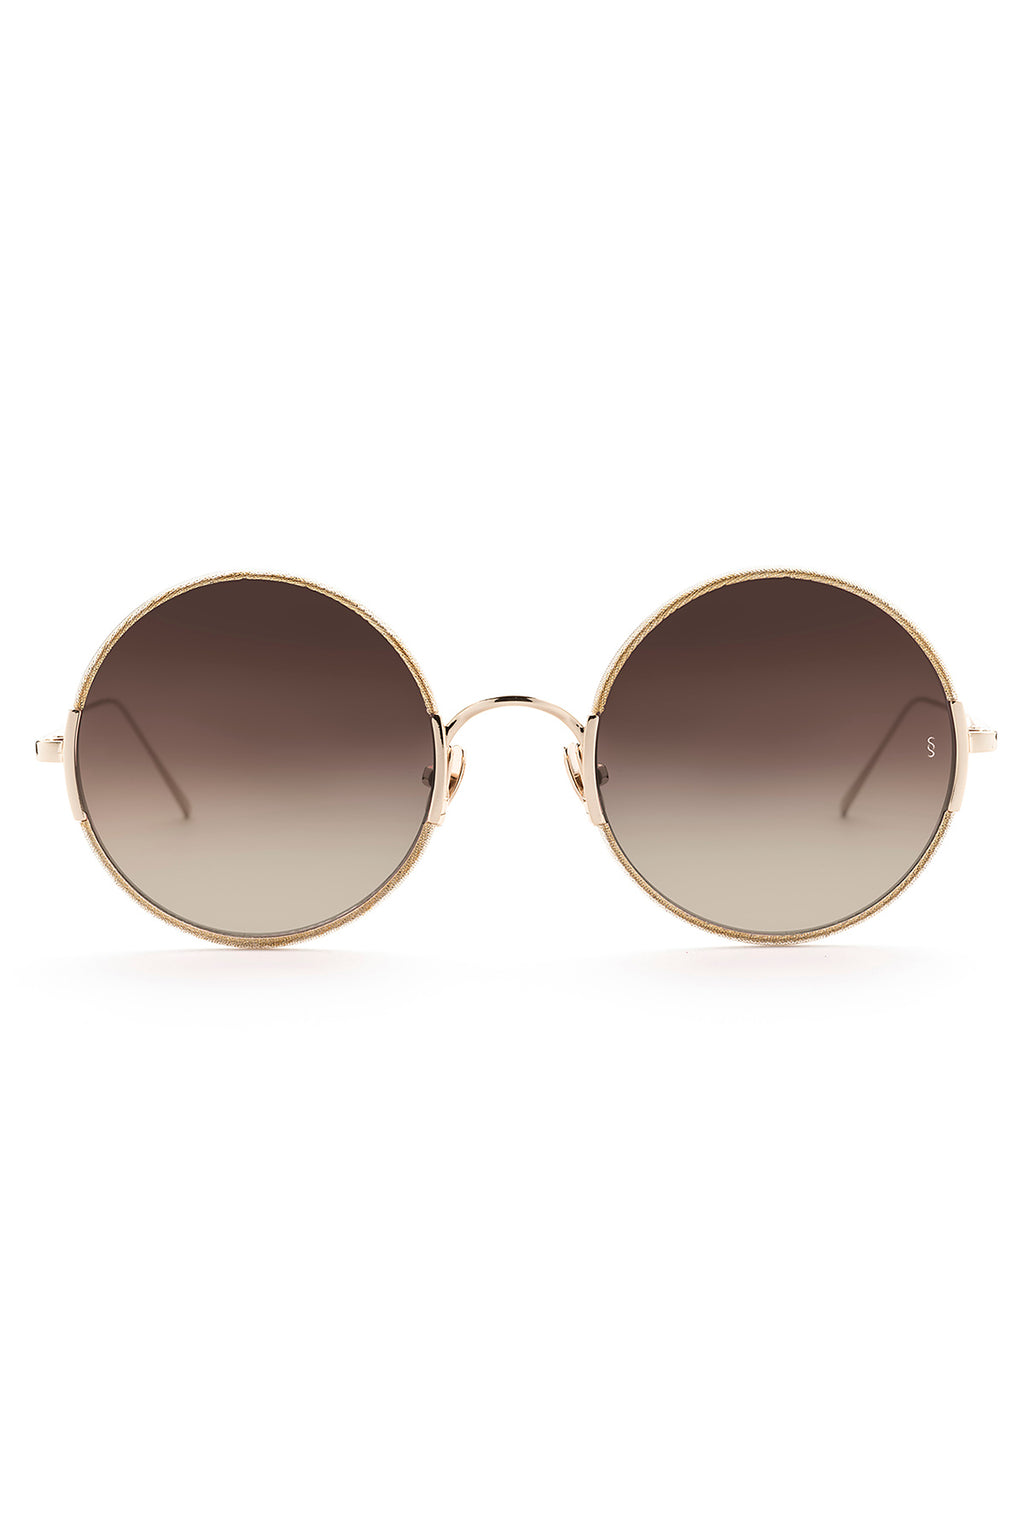 YETTI Sunglasses, White Gold Metal